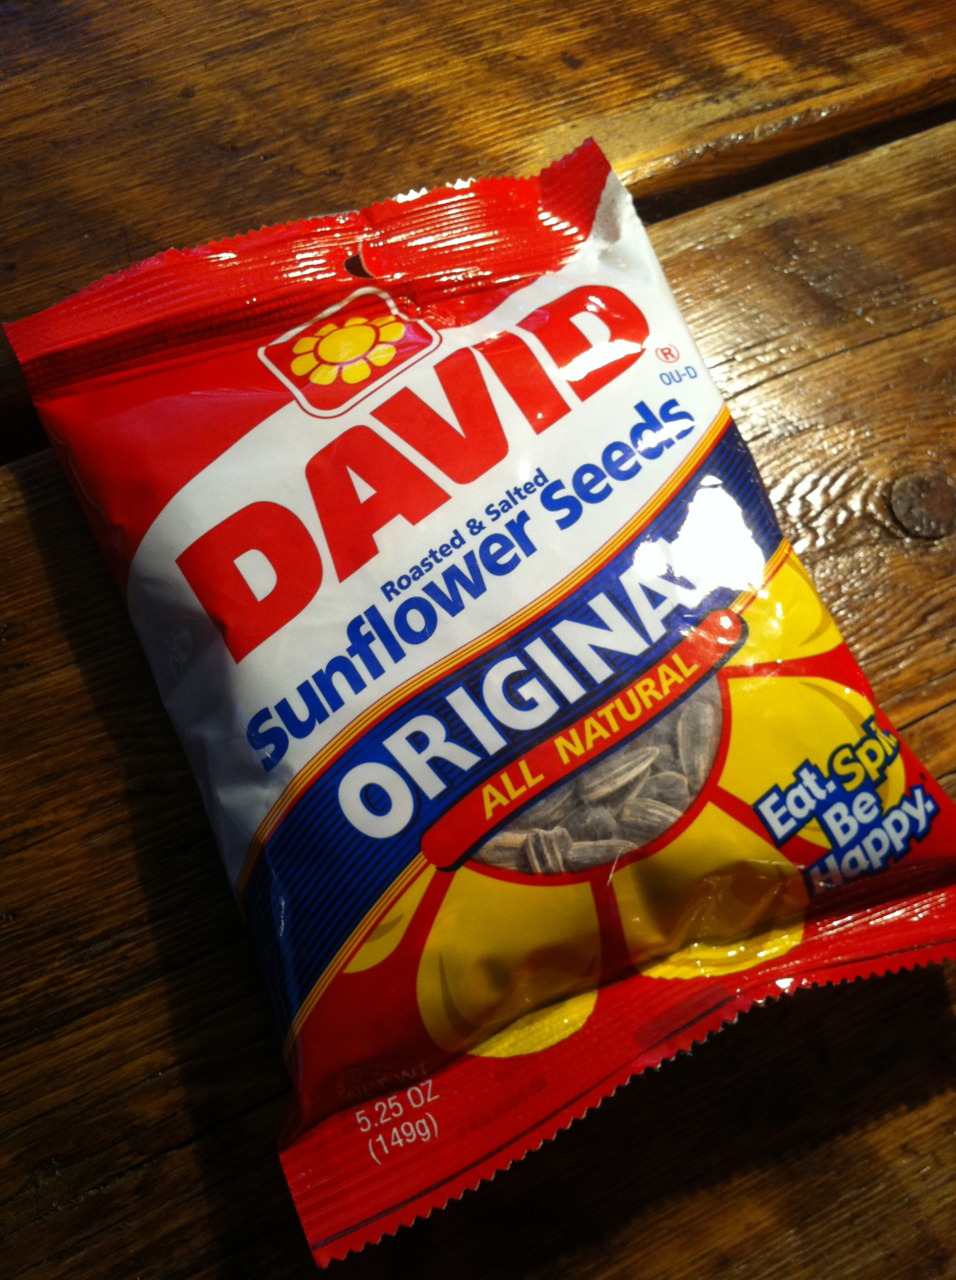 All-American David    We salute summer with the original sunflower seeds. From Omaha, NE.